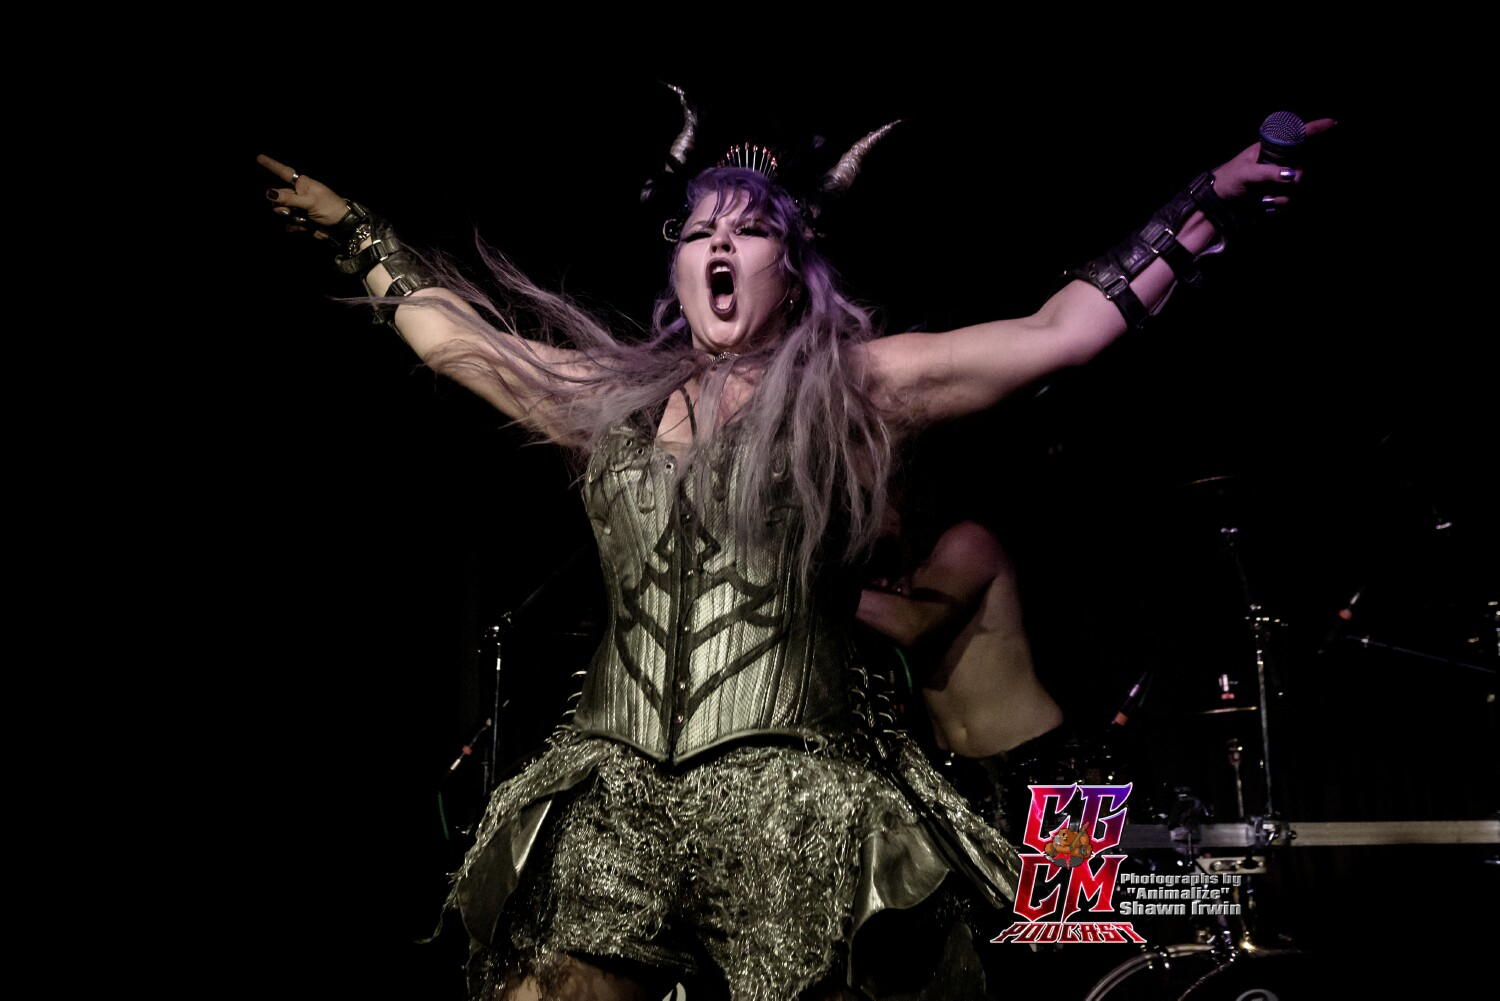 Battle Beast Photos CGCM LOGO Shawn Irwin (32 Of 34)